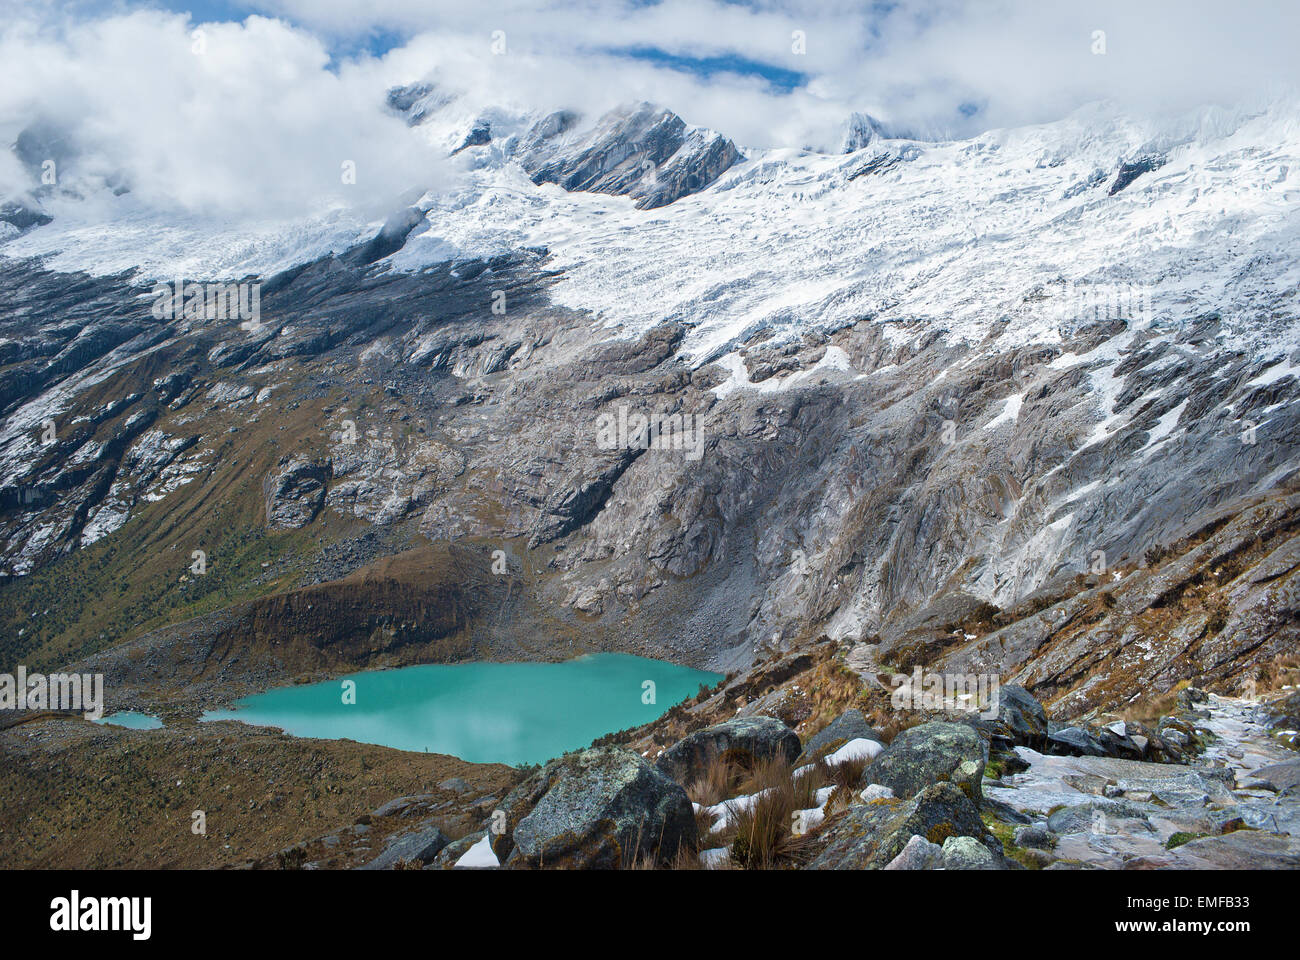 Peru - Look from Cordillera Blanca in the Andes from the trek of santa Cruz - Lagunas Morococha. - Stock Image